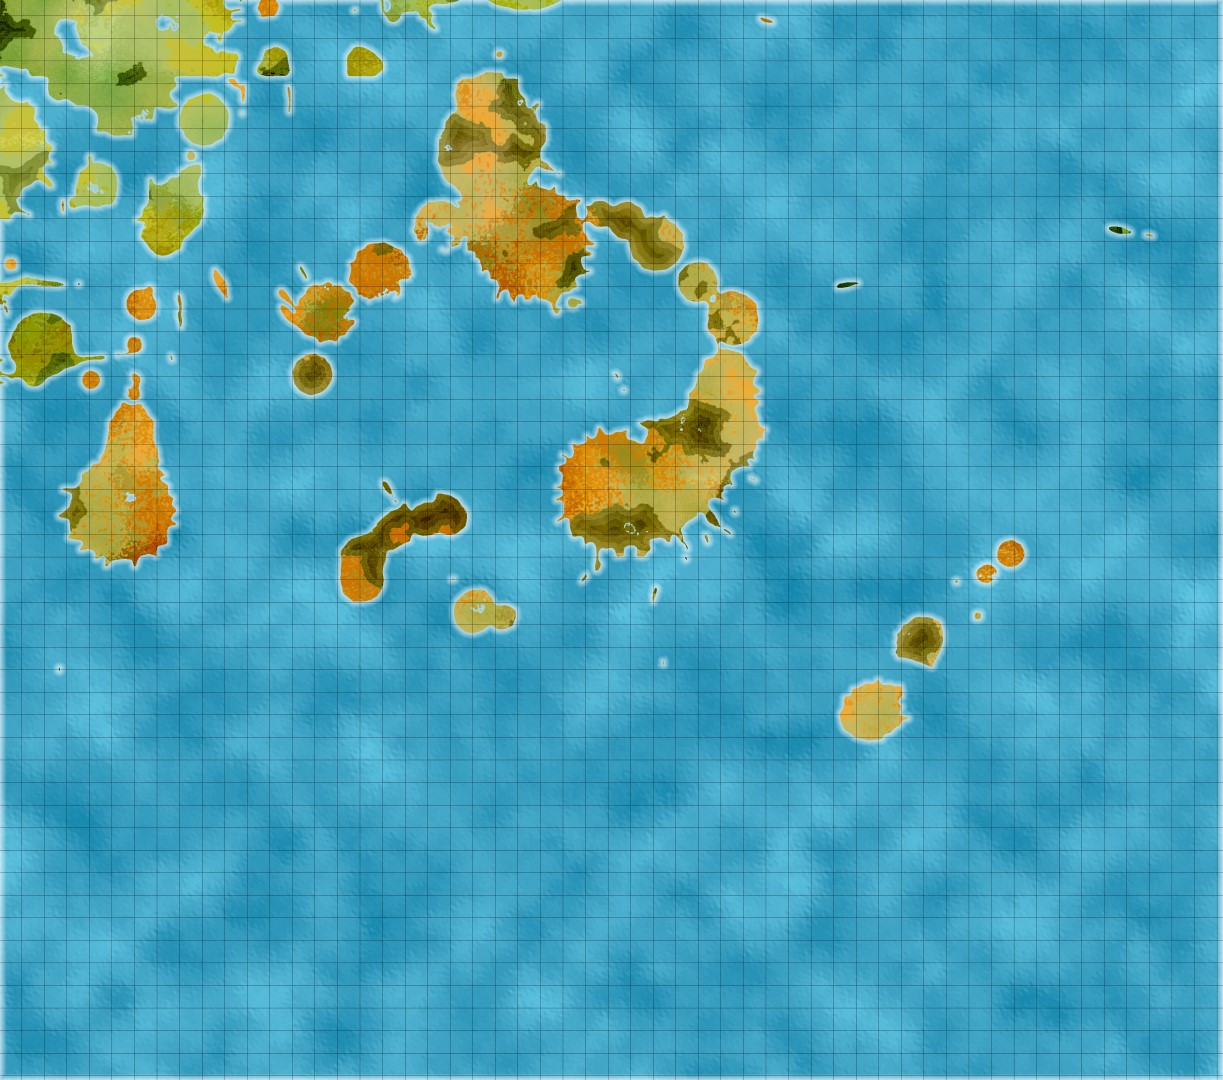 World Map LG   Bottom Right Islands copy (Large)